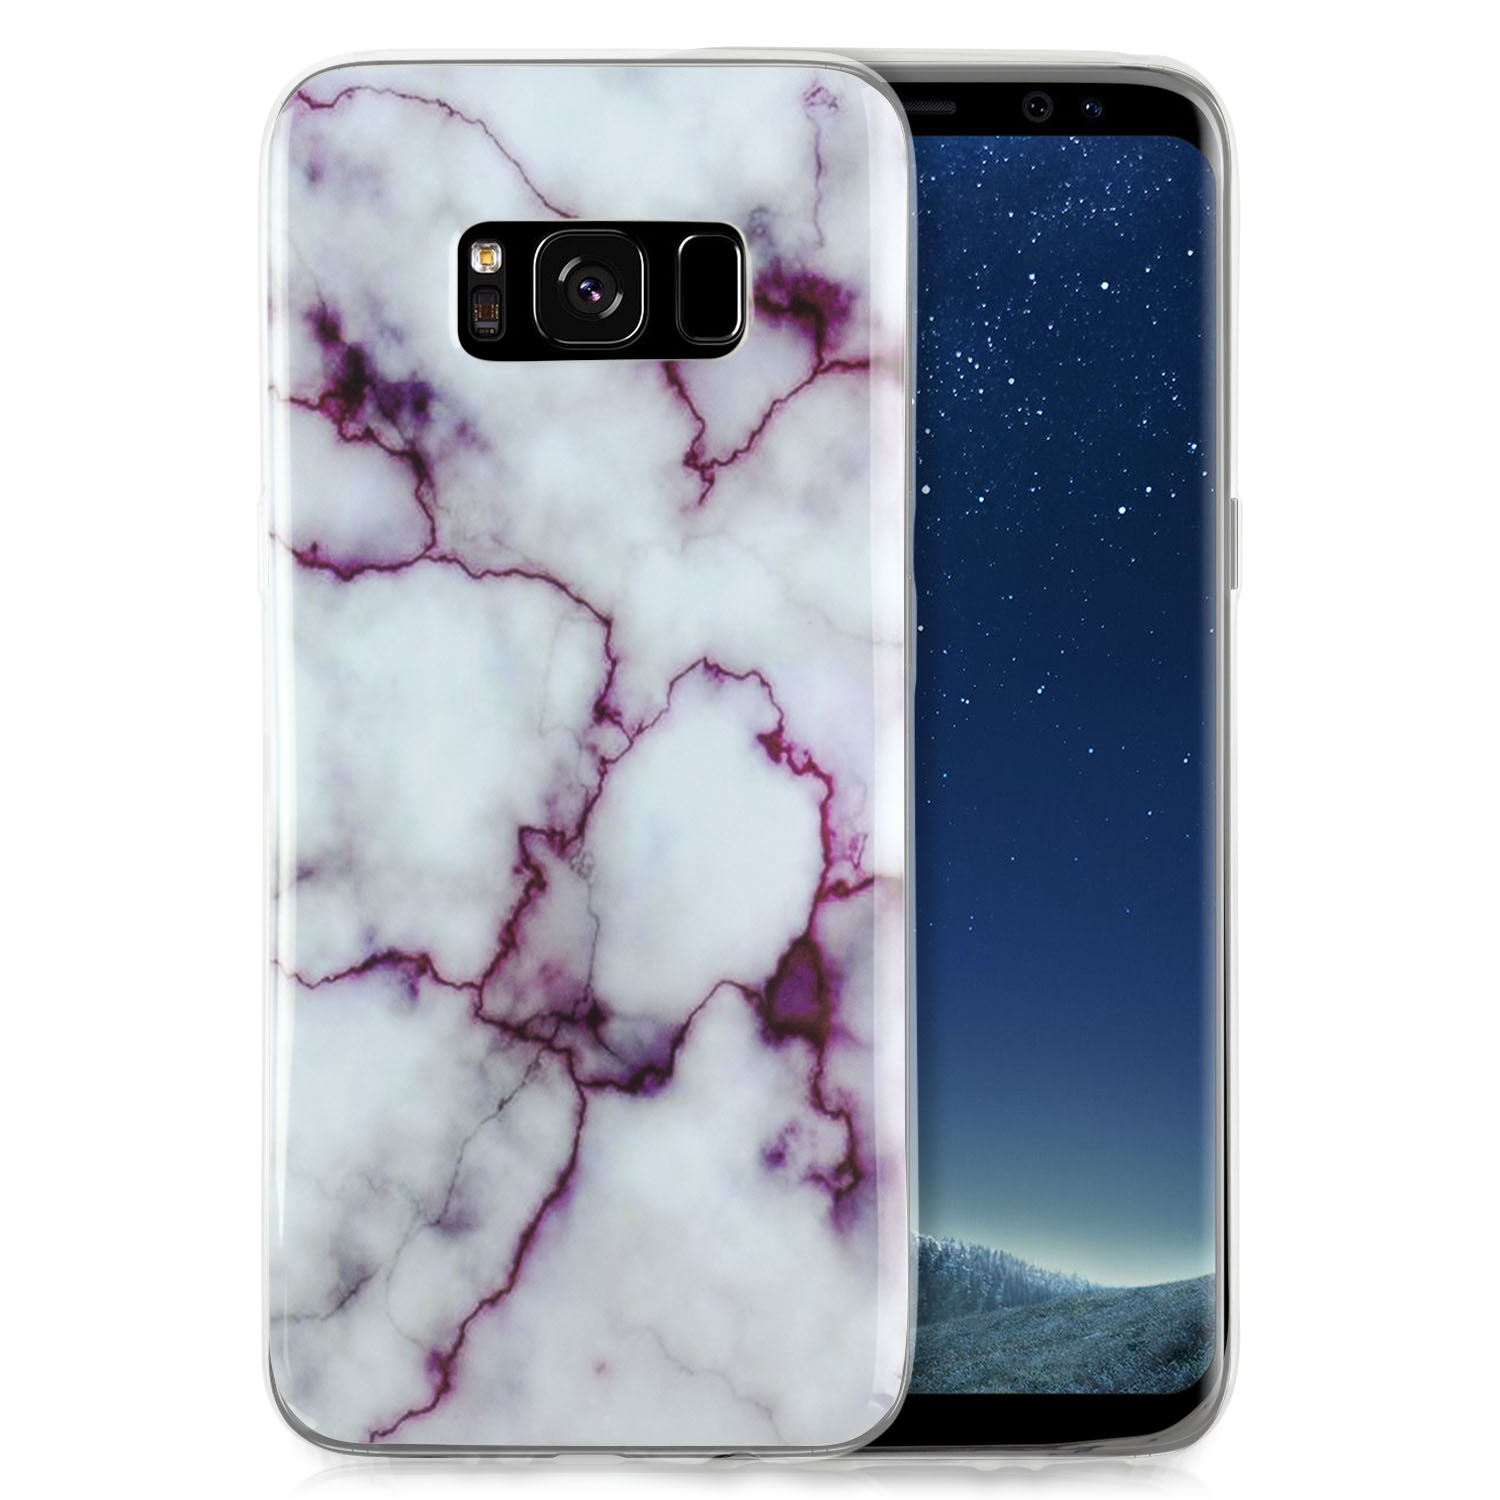 Samsung Galaxy S8 Case, GolemGuard Marble Stone Pattern Front & Back Protection Case for Galaxy S8 Soft Gel Anti-Scratch Cover TPU - PARENT